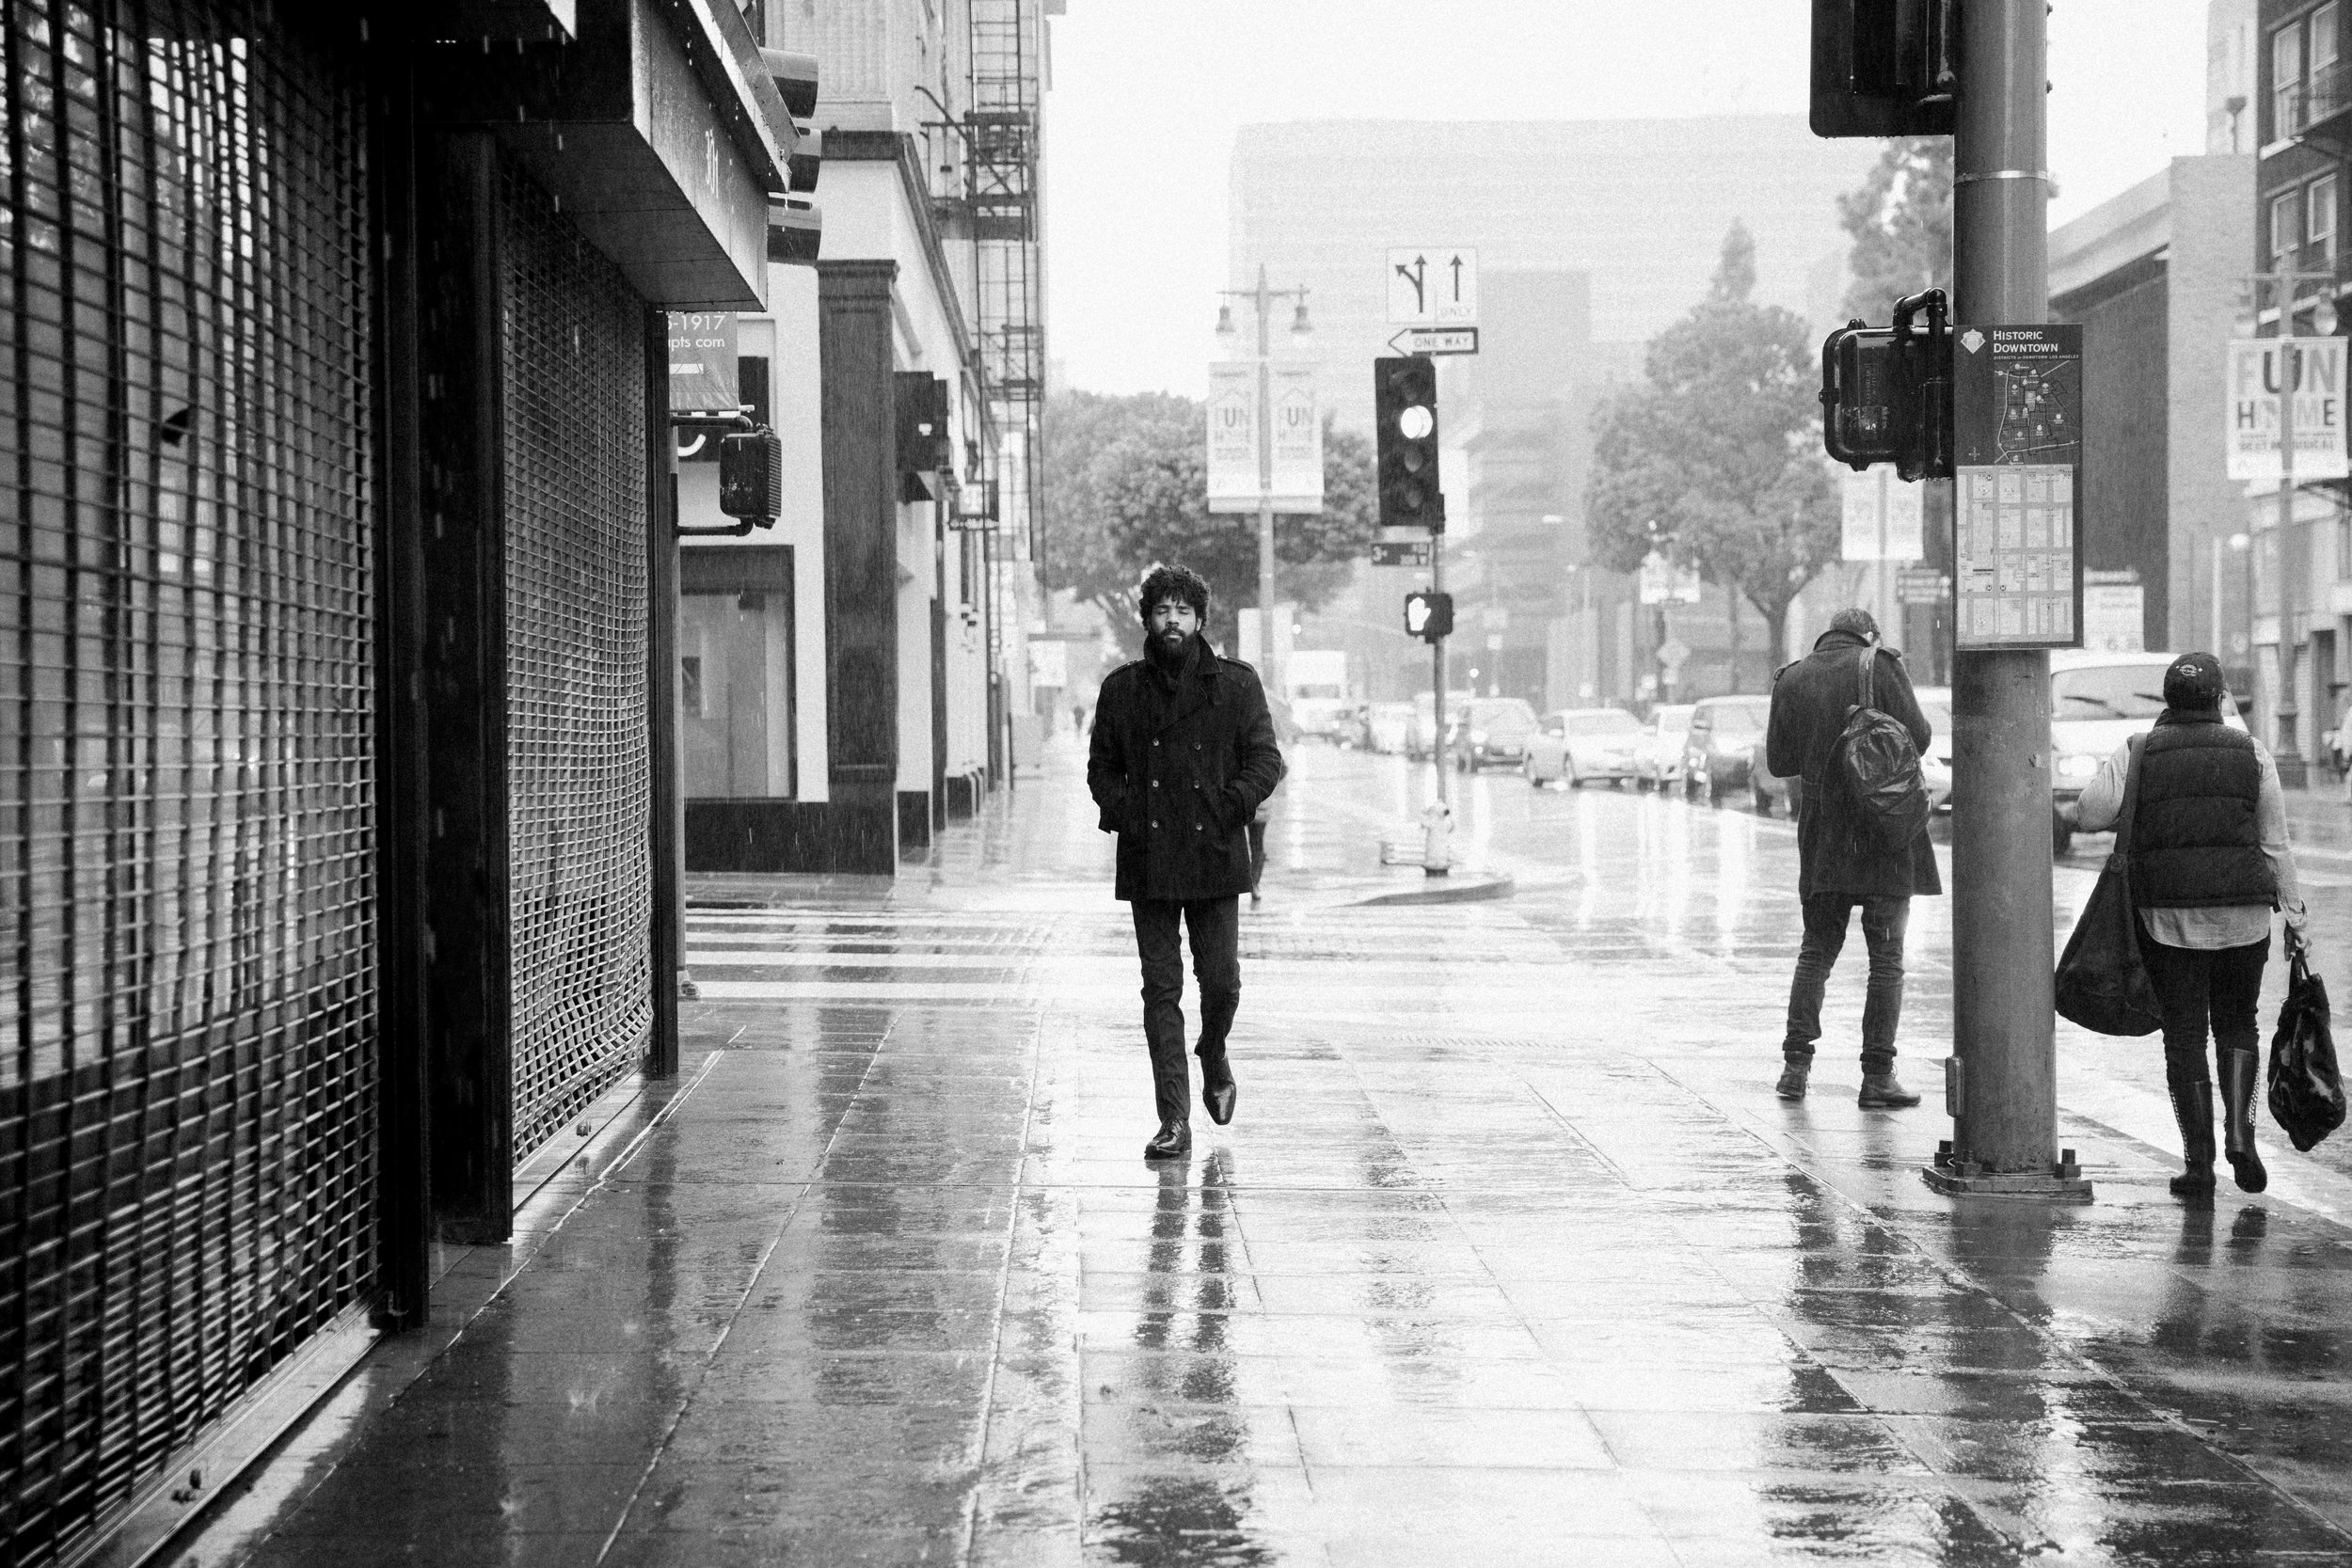 Adam_Rainy_Day_Shoot-2.jpg